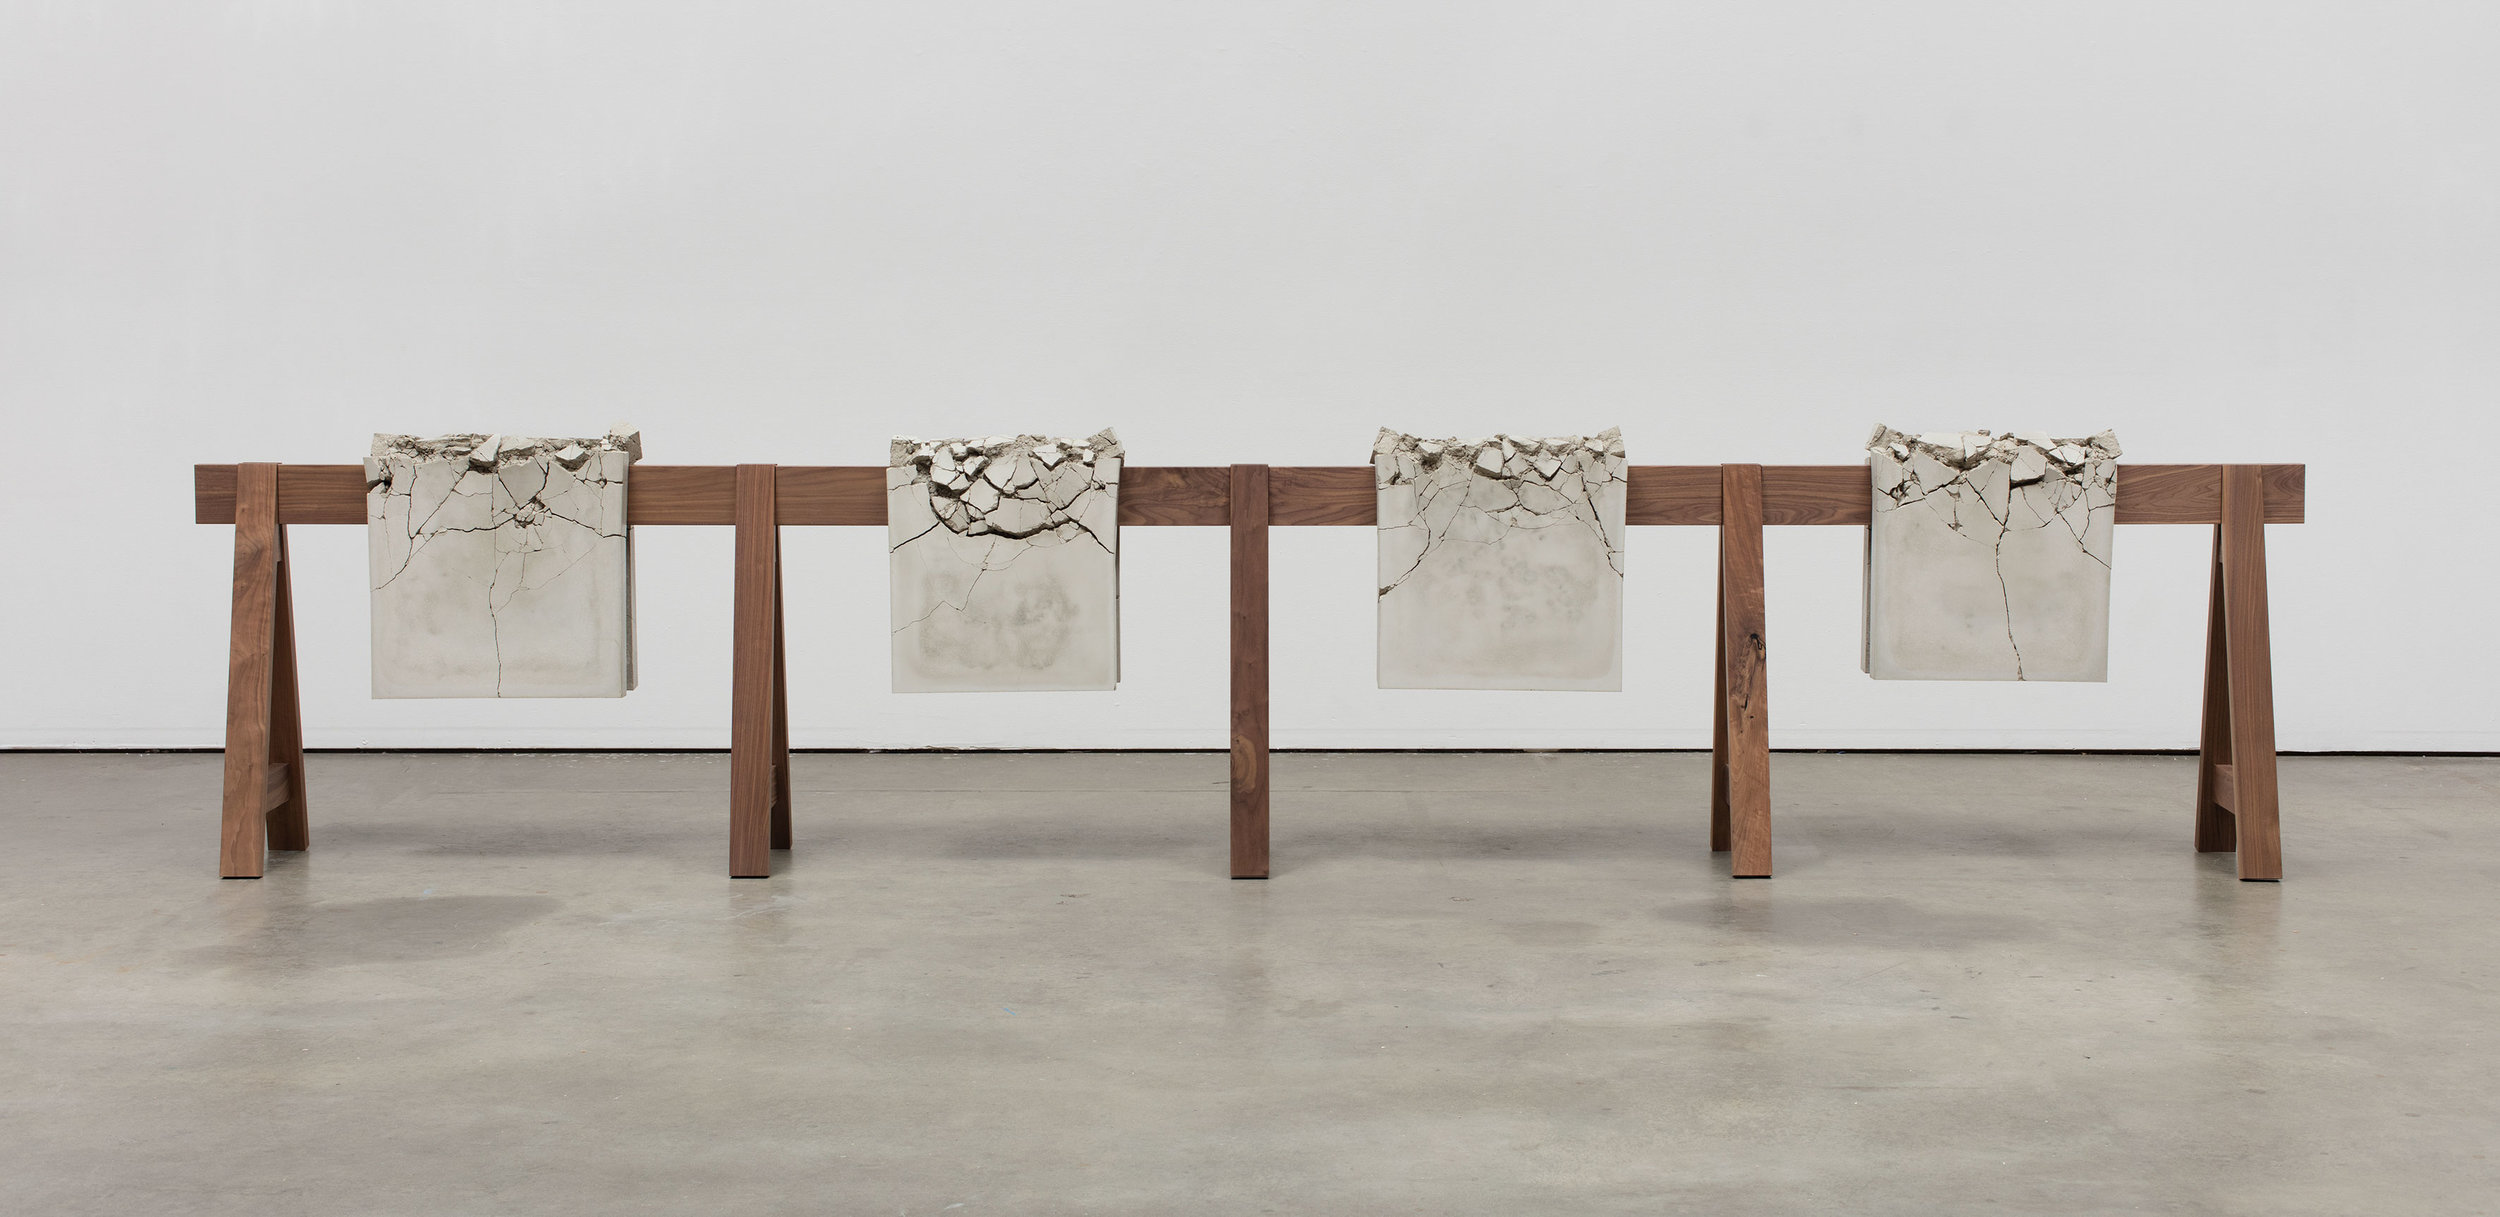 """Analia Saban. """"Draped Concrete"""" (2016). Four concrete slabs on wooden sawhorse. 104,8 x 487,7 x 42,9 41 CENTIMETERS. 1/4 x 192 x 16 7/8 INCHES Courtesy the artist and Sprüth Magers Photo: Brian Forrest"""